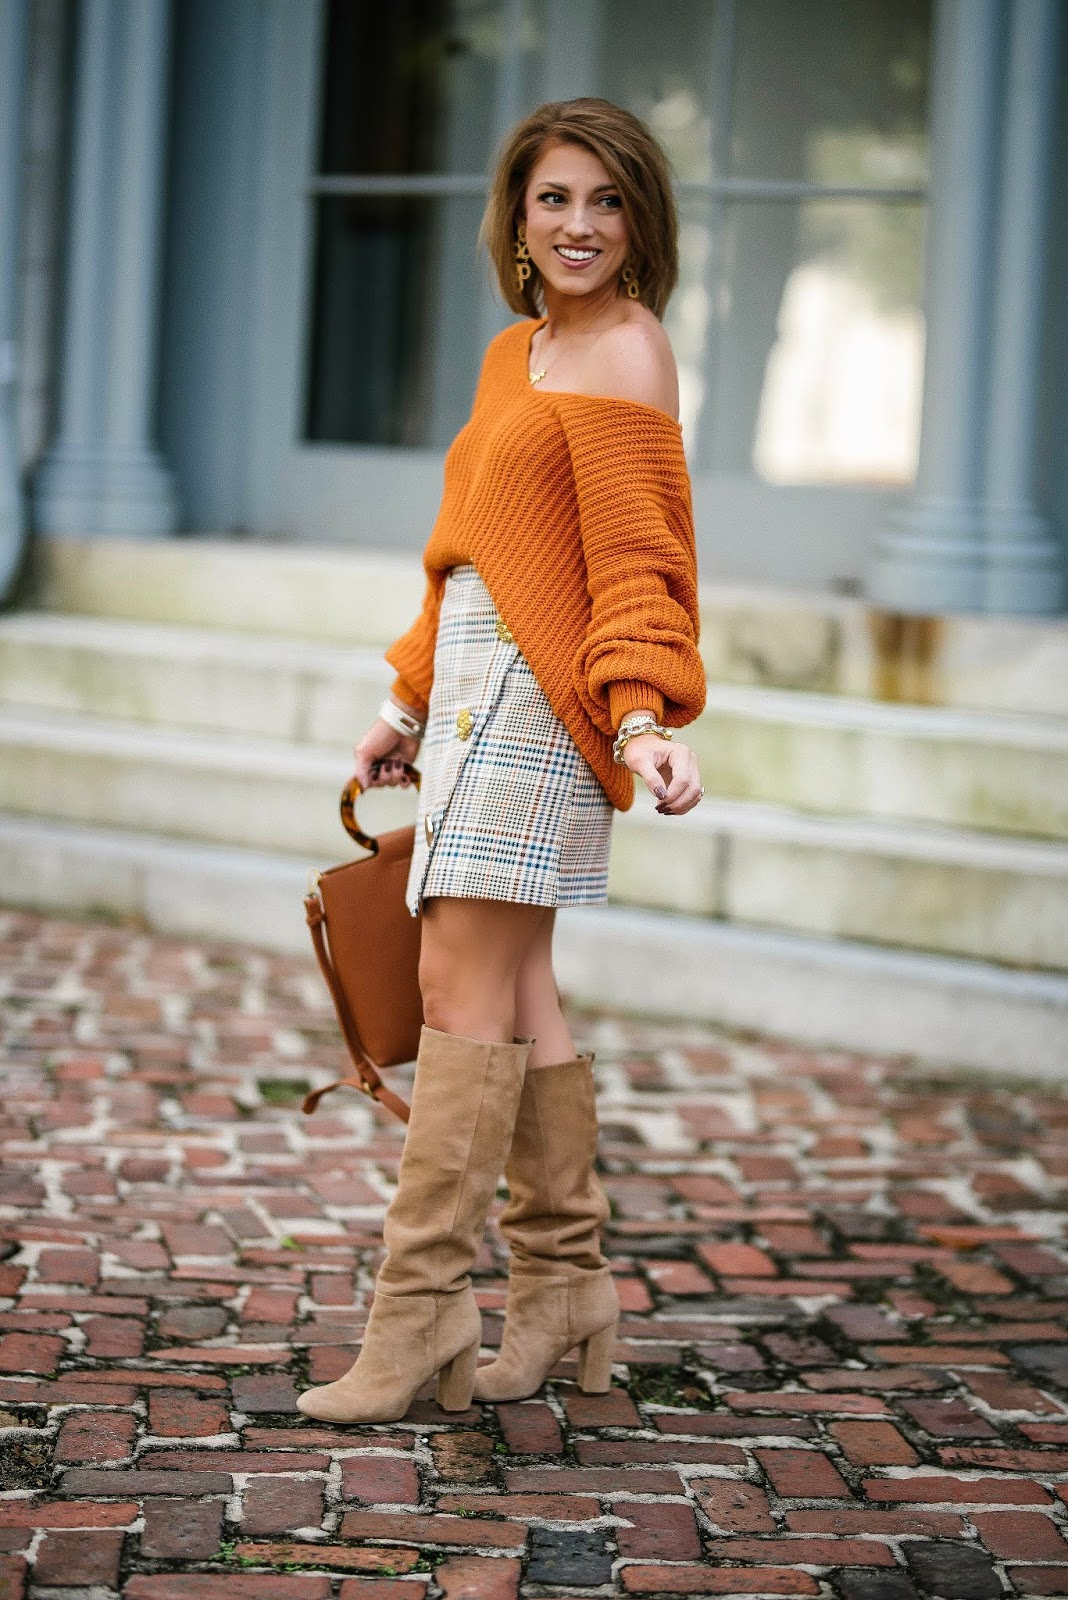 Under $60 Plaid Faux-Wrap Skirt for Fall + Slouchy Orange Sweater - Something Delightful Blog